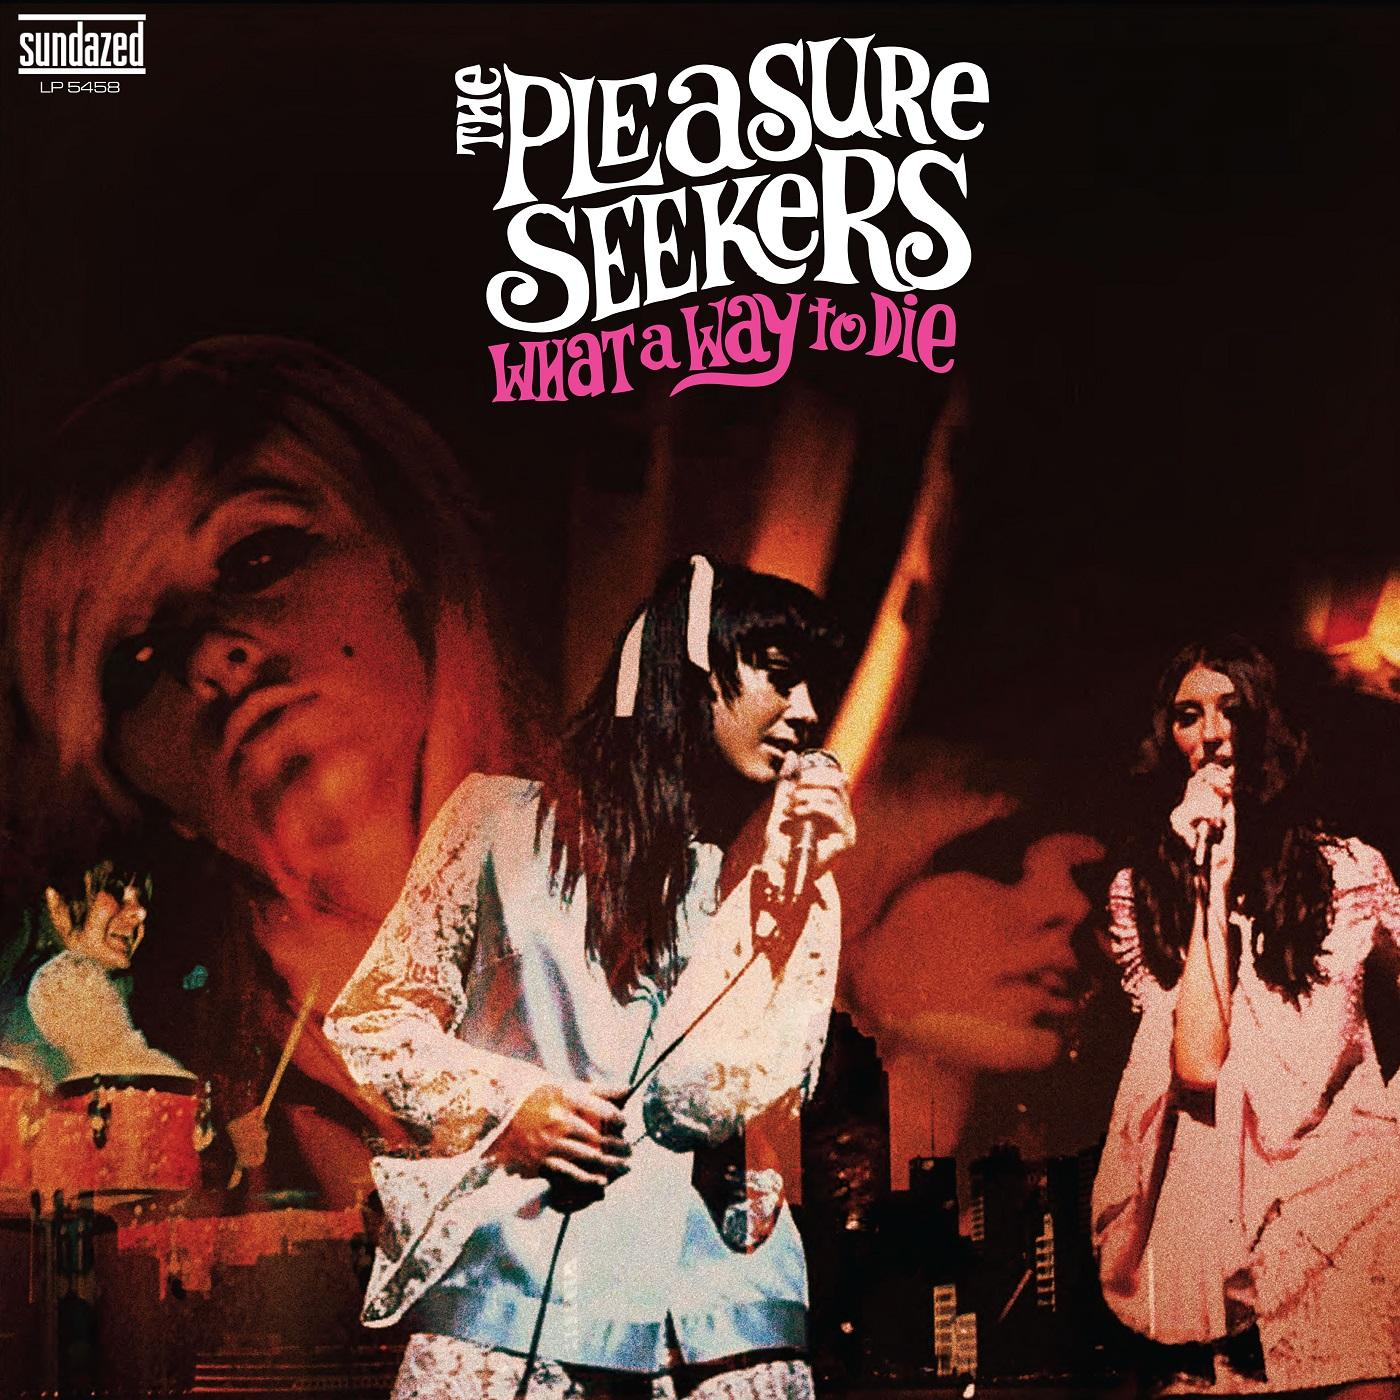 Pleasure Seekers, The - What A Way To Die - LP - LP 5458